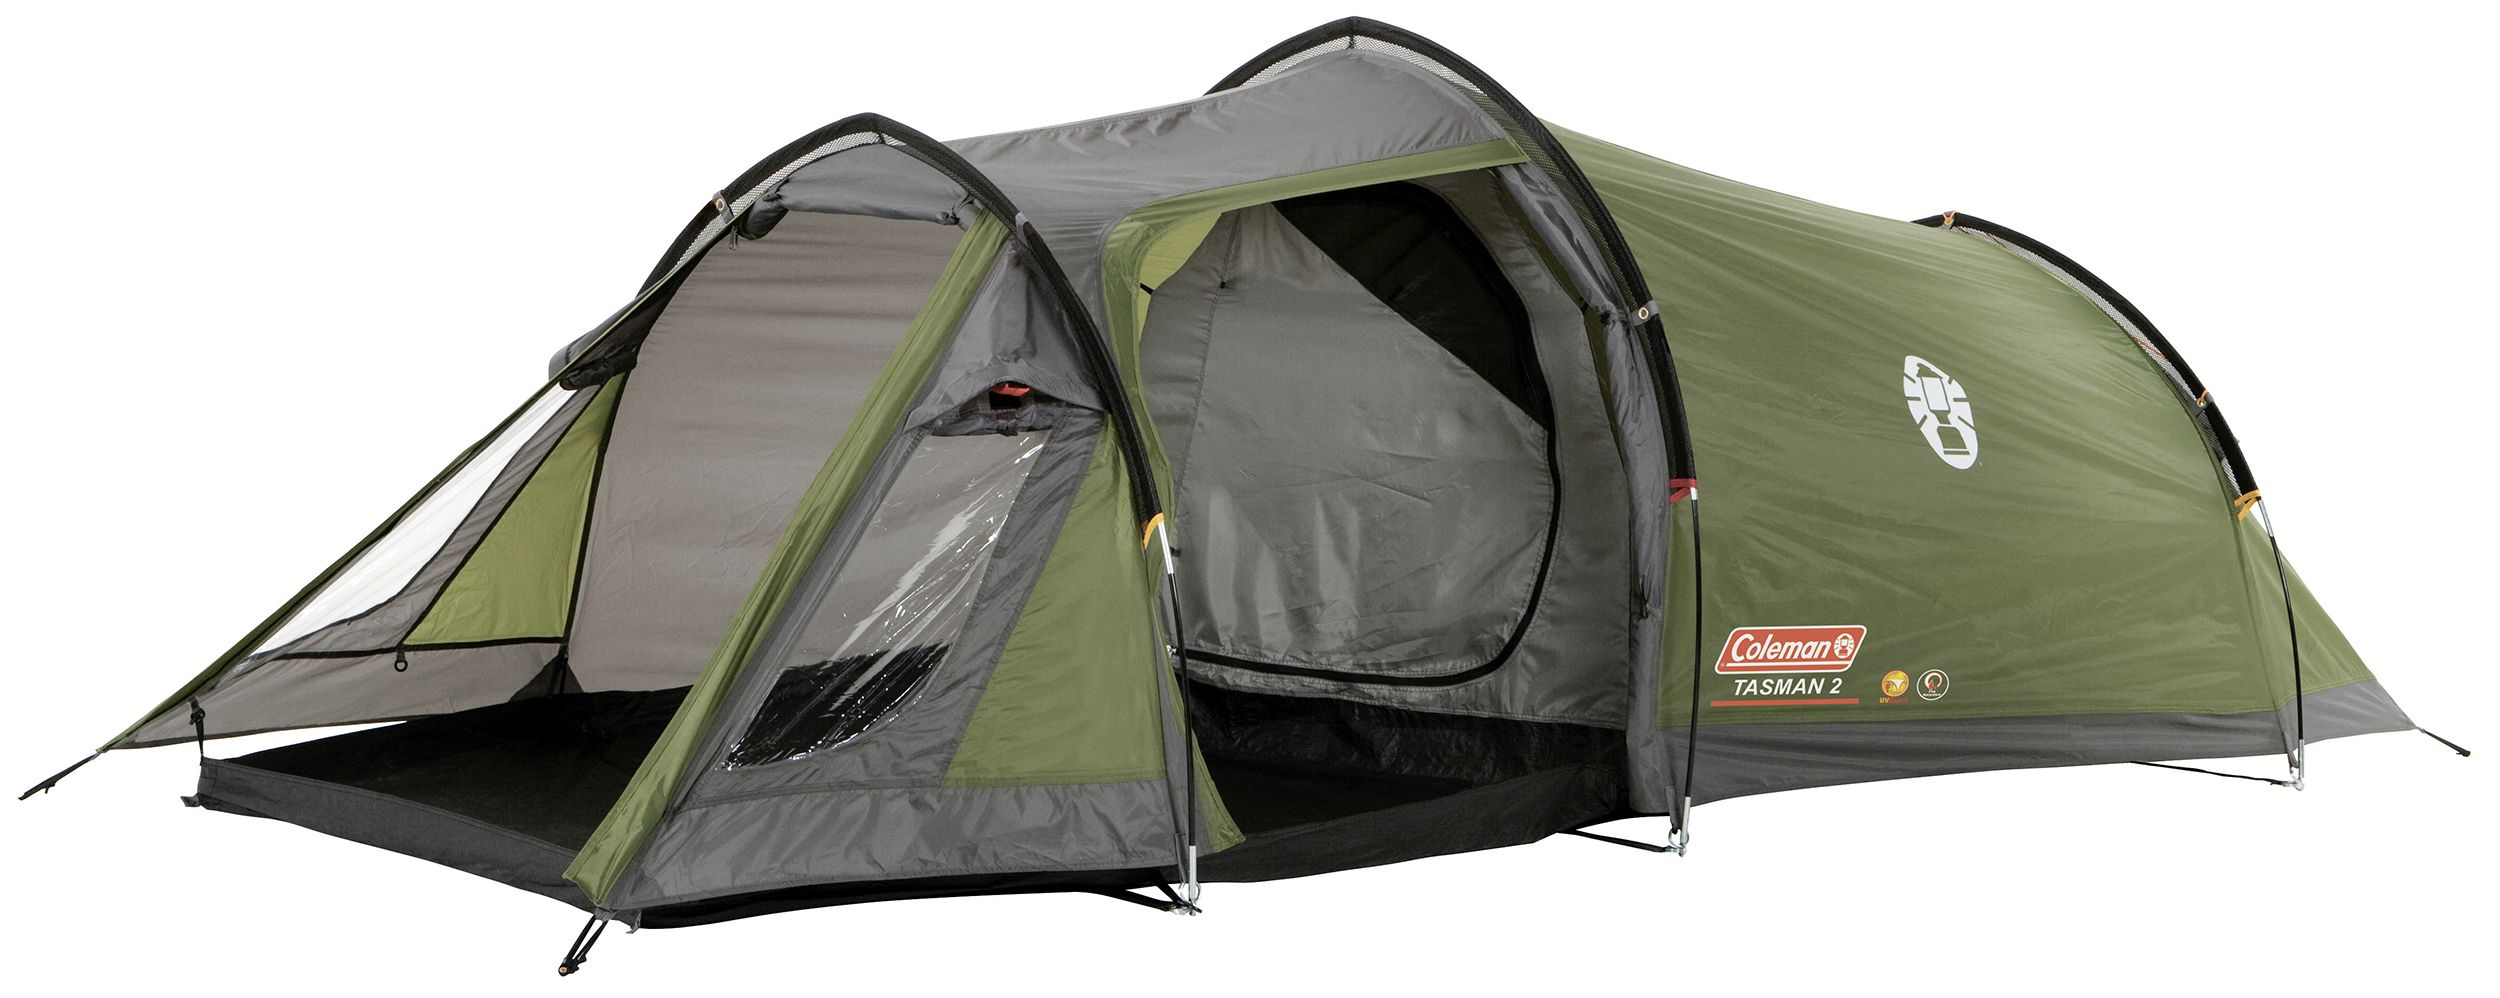 Coleman Tasman 2 Man C&ing Tunnel Tent Tents c&ing tents c&ing equipment c&ing accessories coleman tents outdoor equipment shop ...  sc 1 st  Grasshopper Leisure & Coleman Tasman 2 Man Camping Tunnel Tent Tents camping tents ...